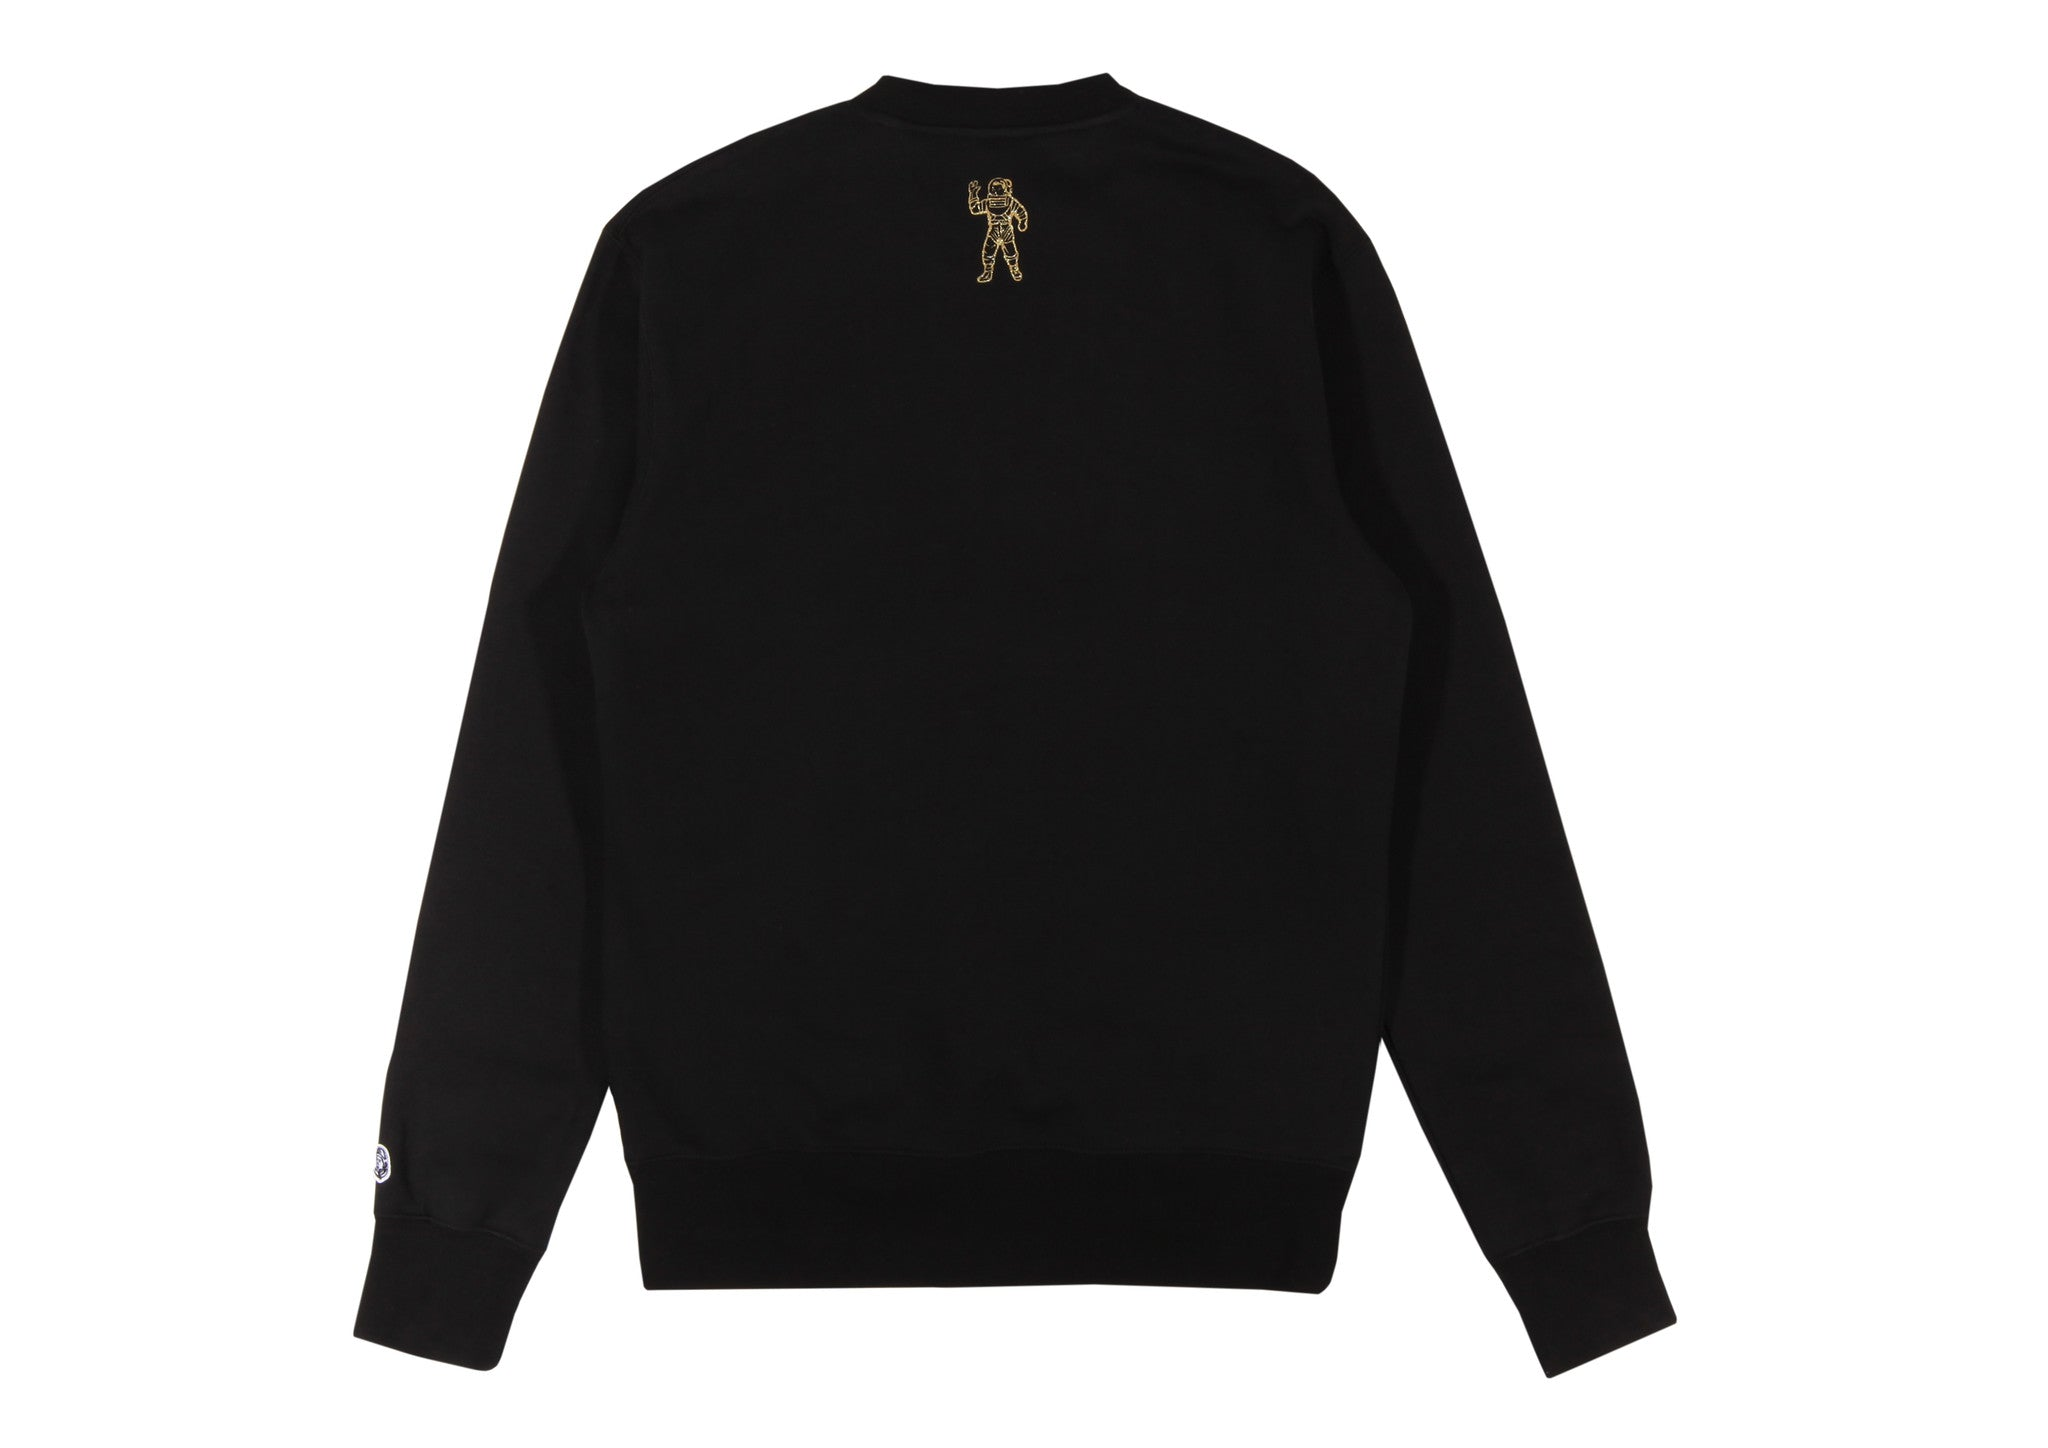 Billionaire Boys Club Pre-Spring '17 GLITTER PACK ARCH LOGO CREWNECK - BLACK/GOLD